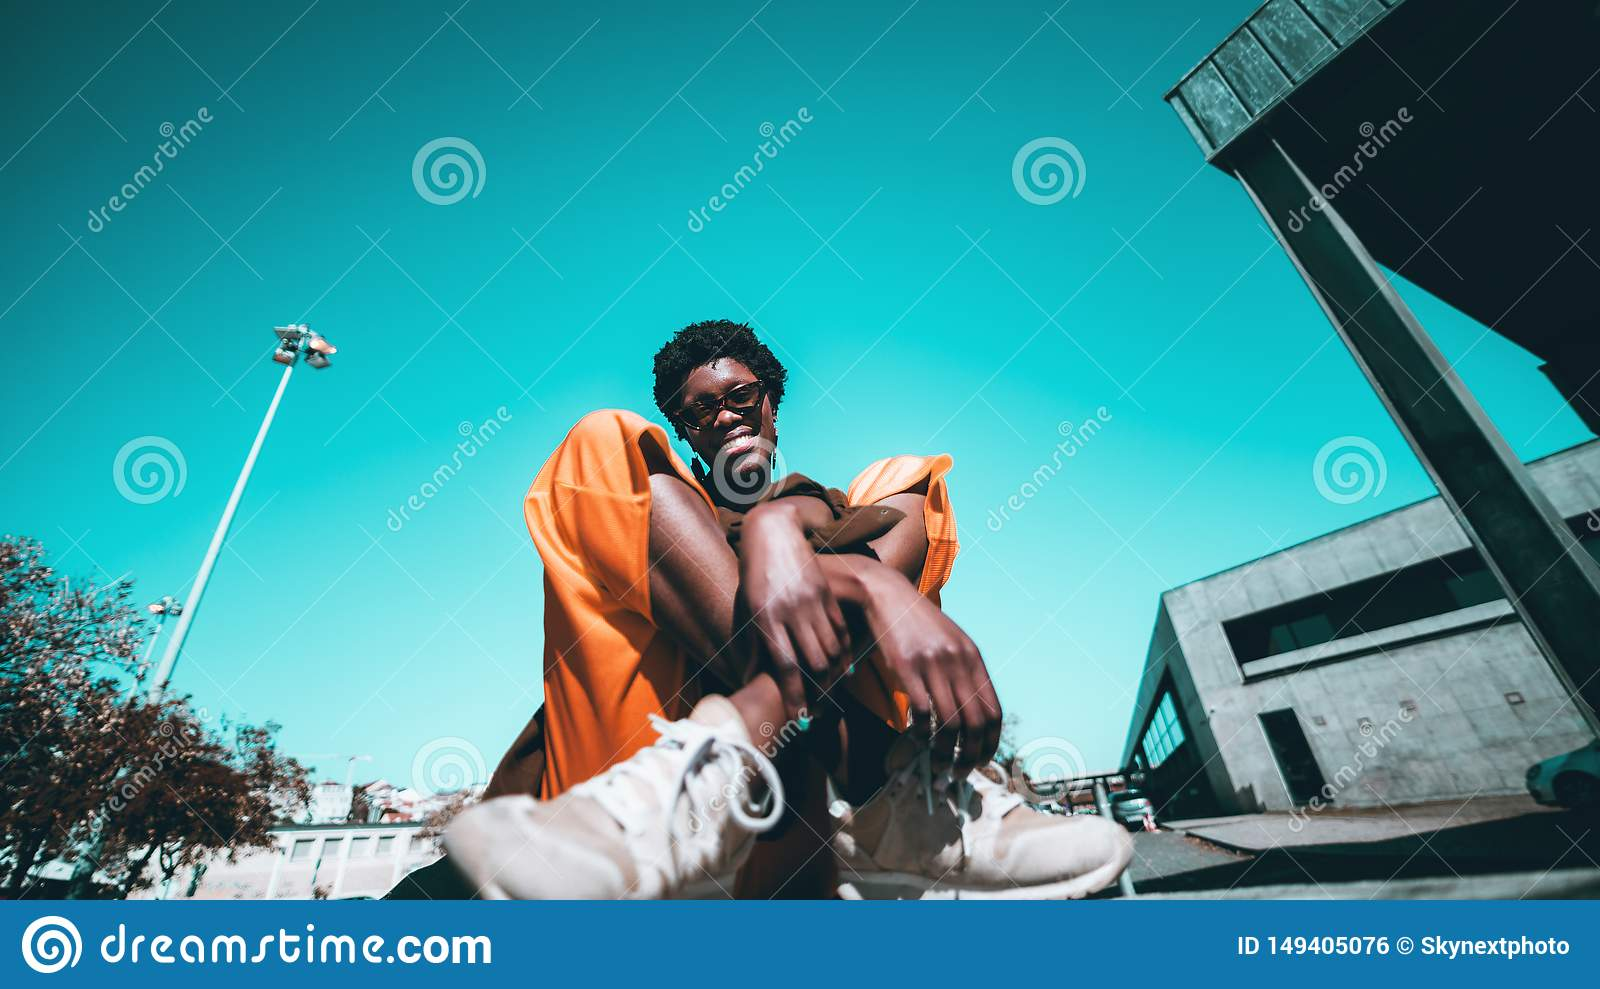 An Afro girl is sitting on the ground